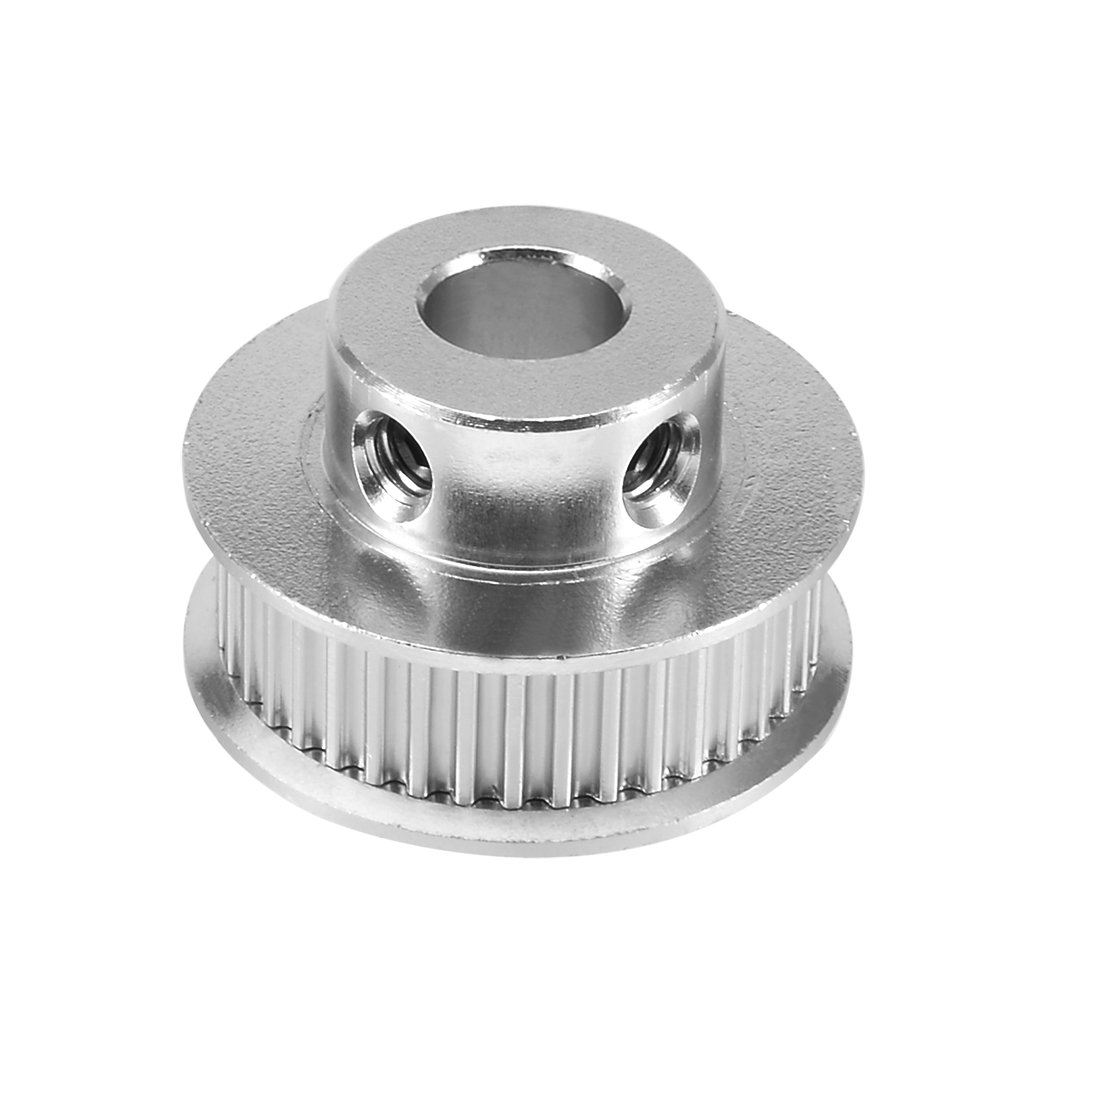 uxcell Aluminum GT2 36 Teeth 8mm Bore Timing Belt Pulley Flange Synchronous Wheel for 3D Printer